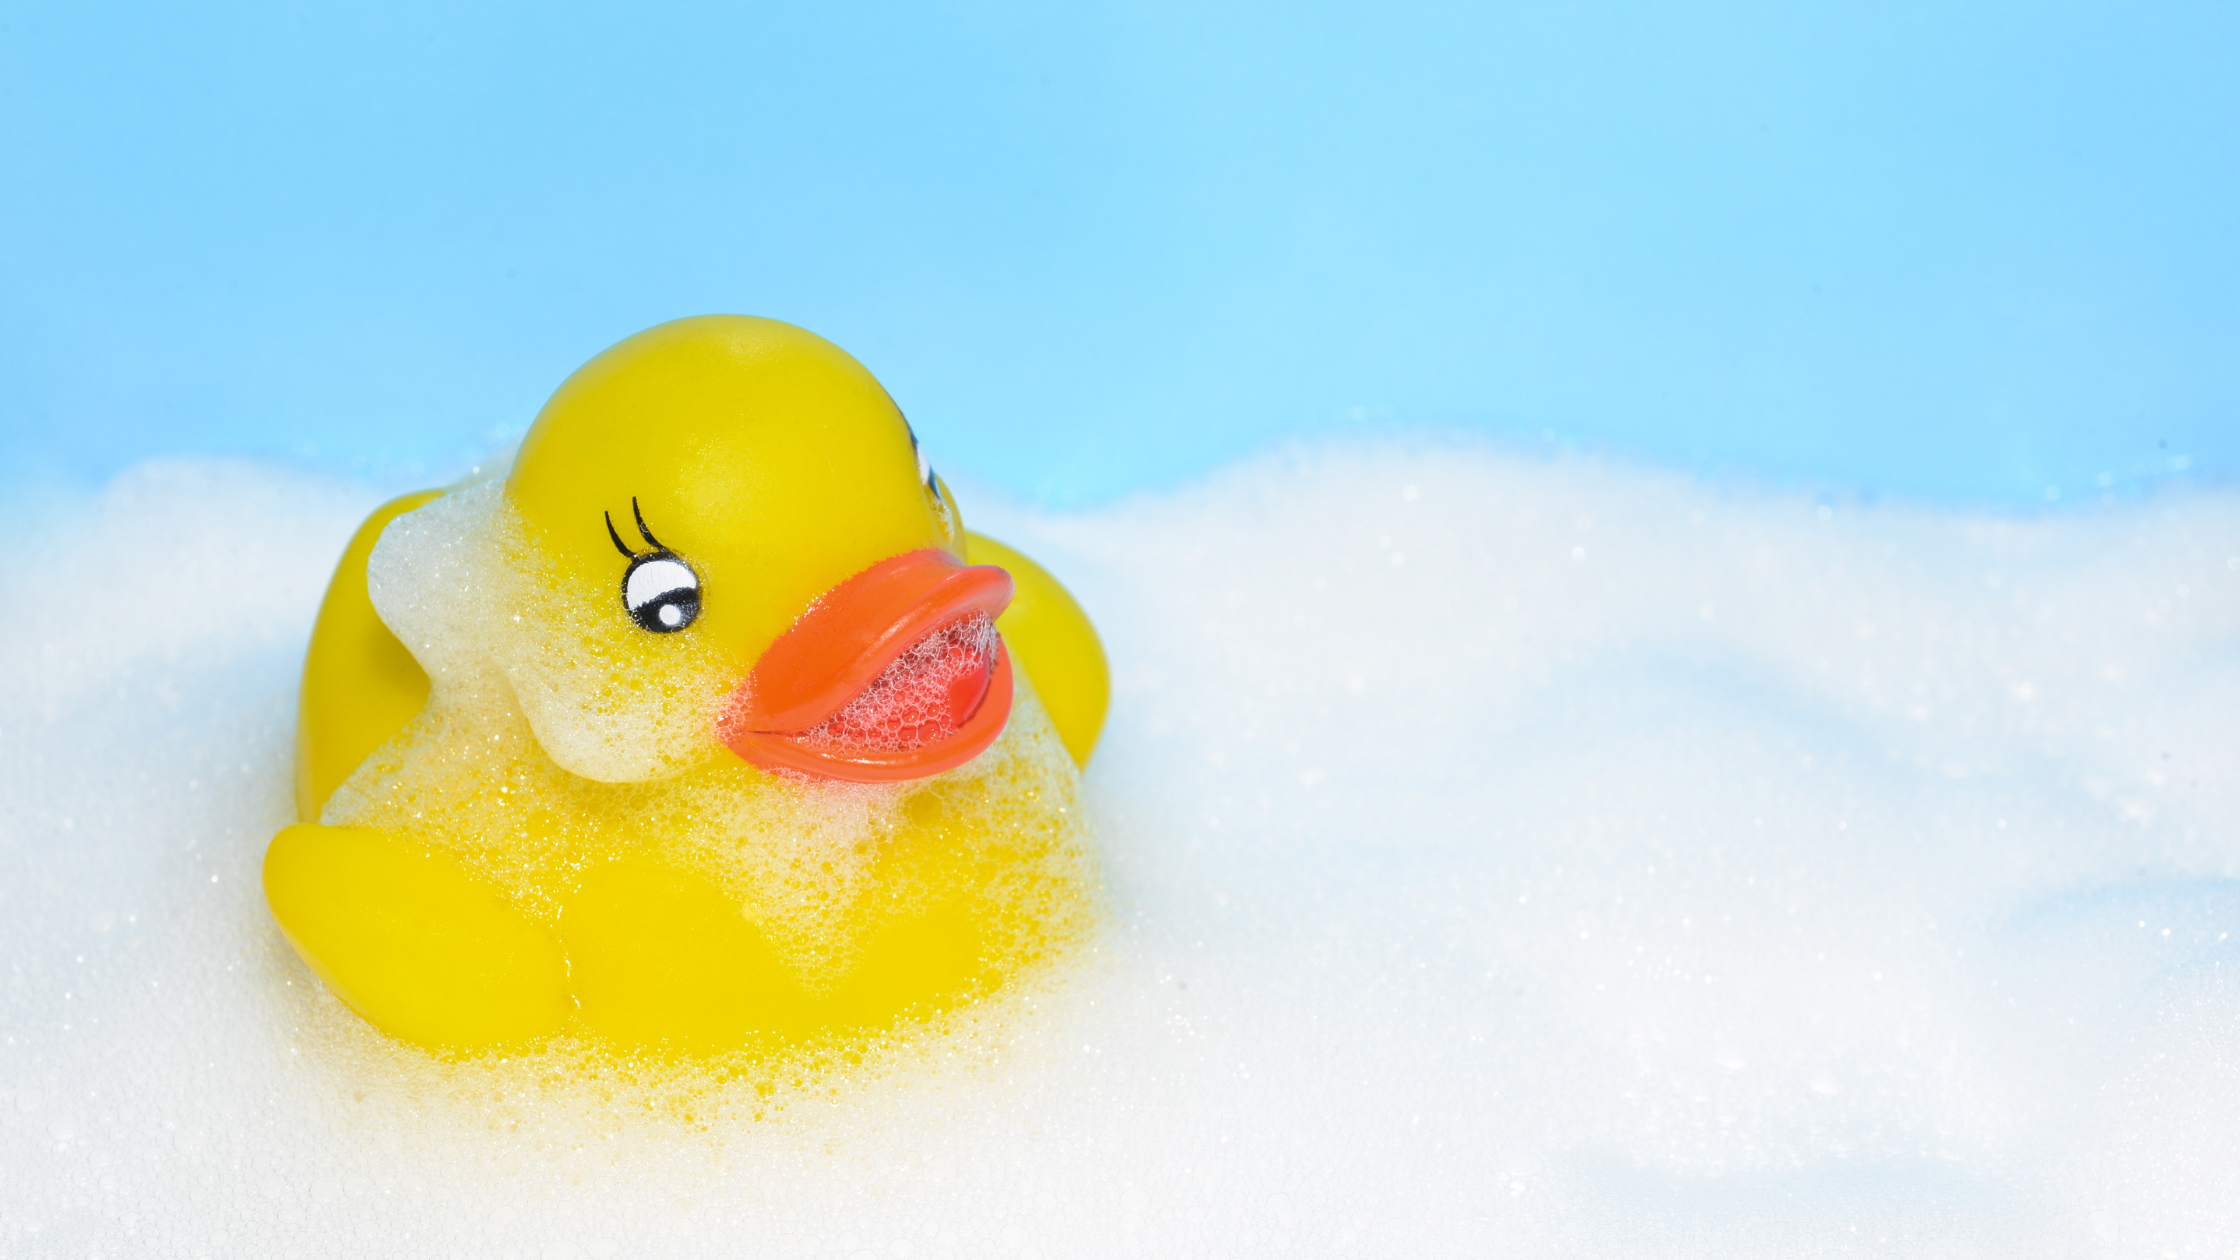 Yellow rubber duck covered in soap floating in a bathtub.